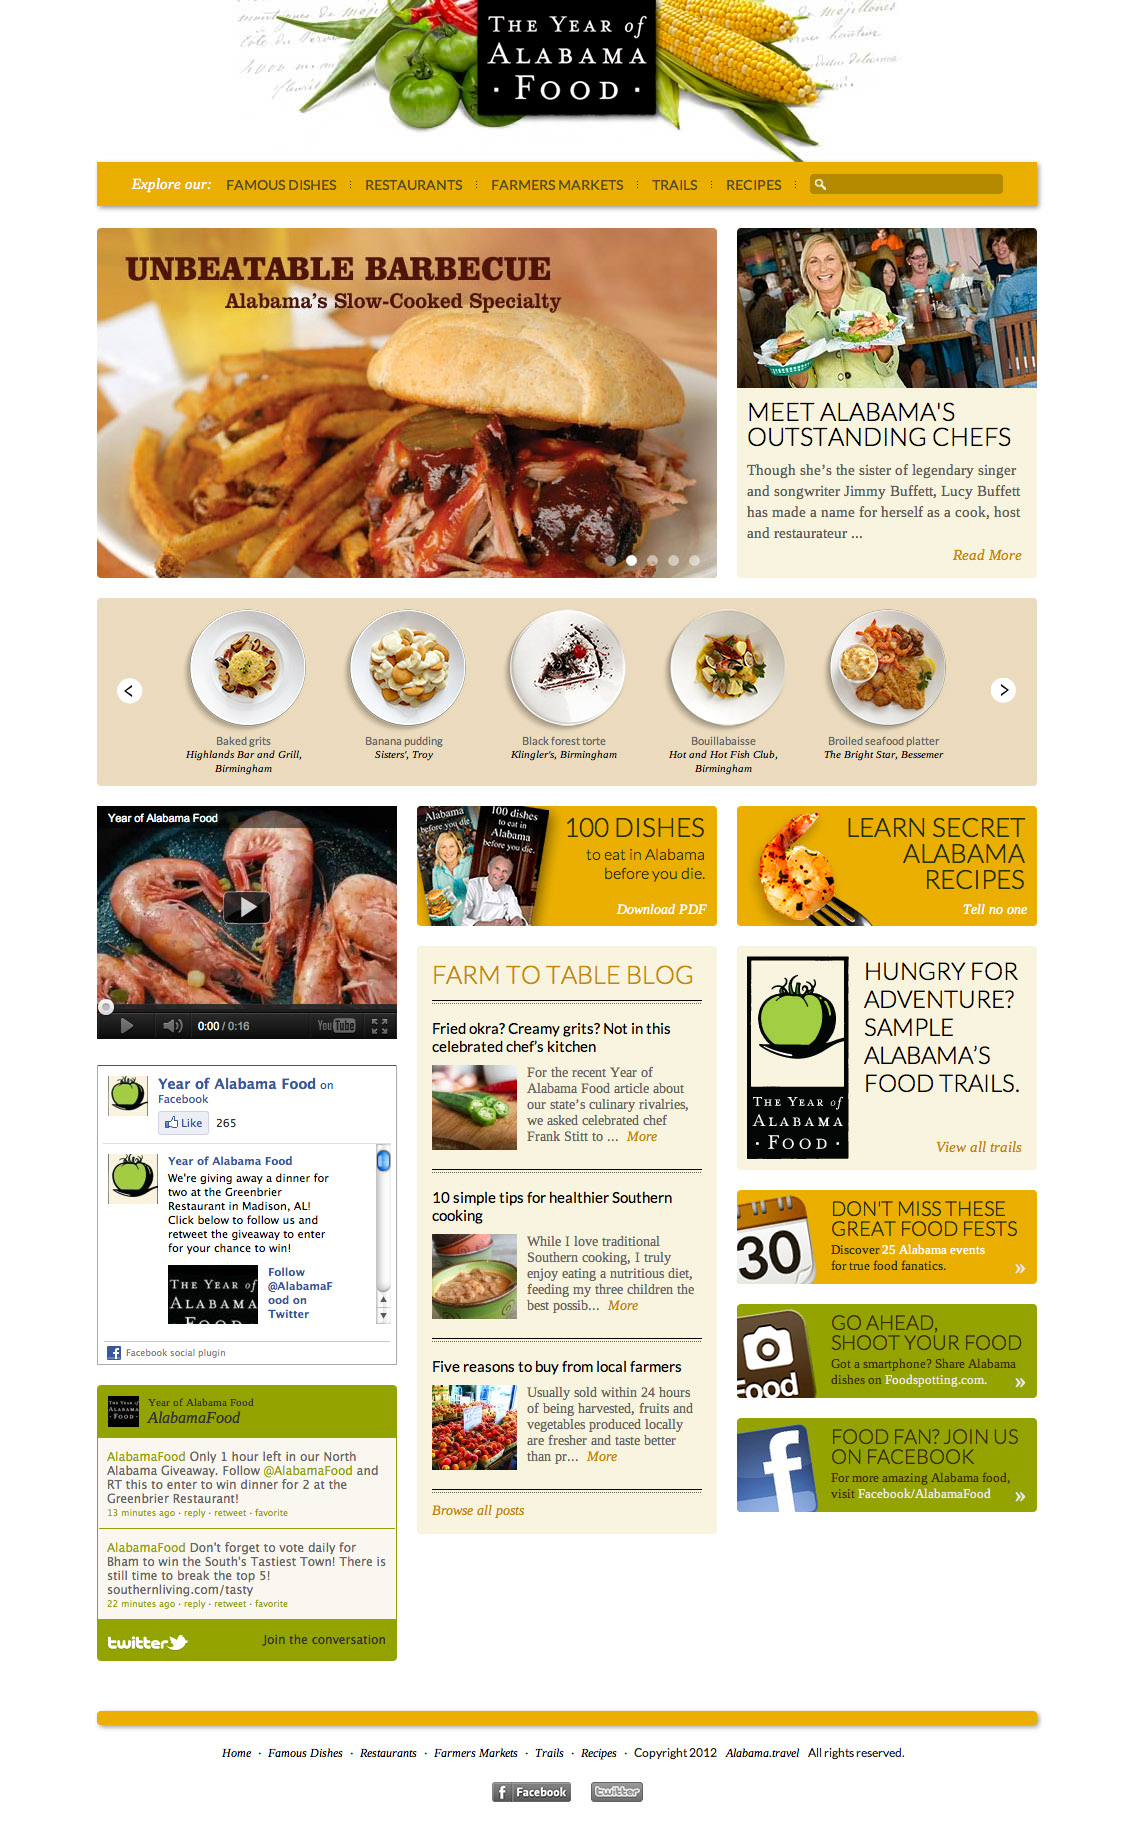 Alabama Tourism Launches The Year Of Alabama Food Website